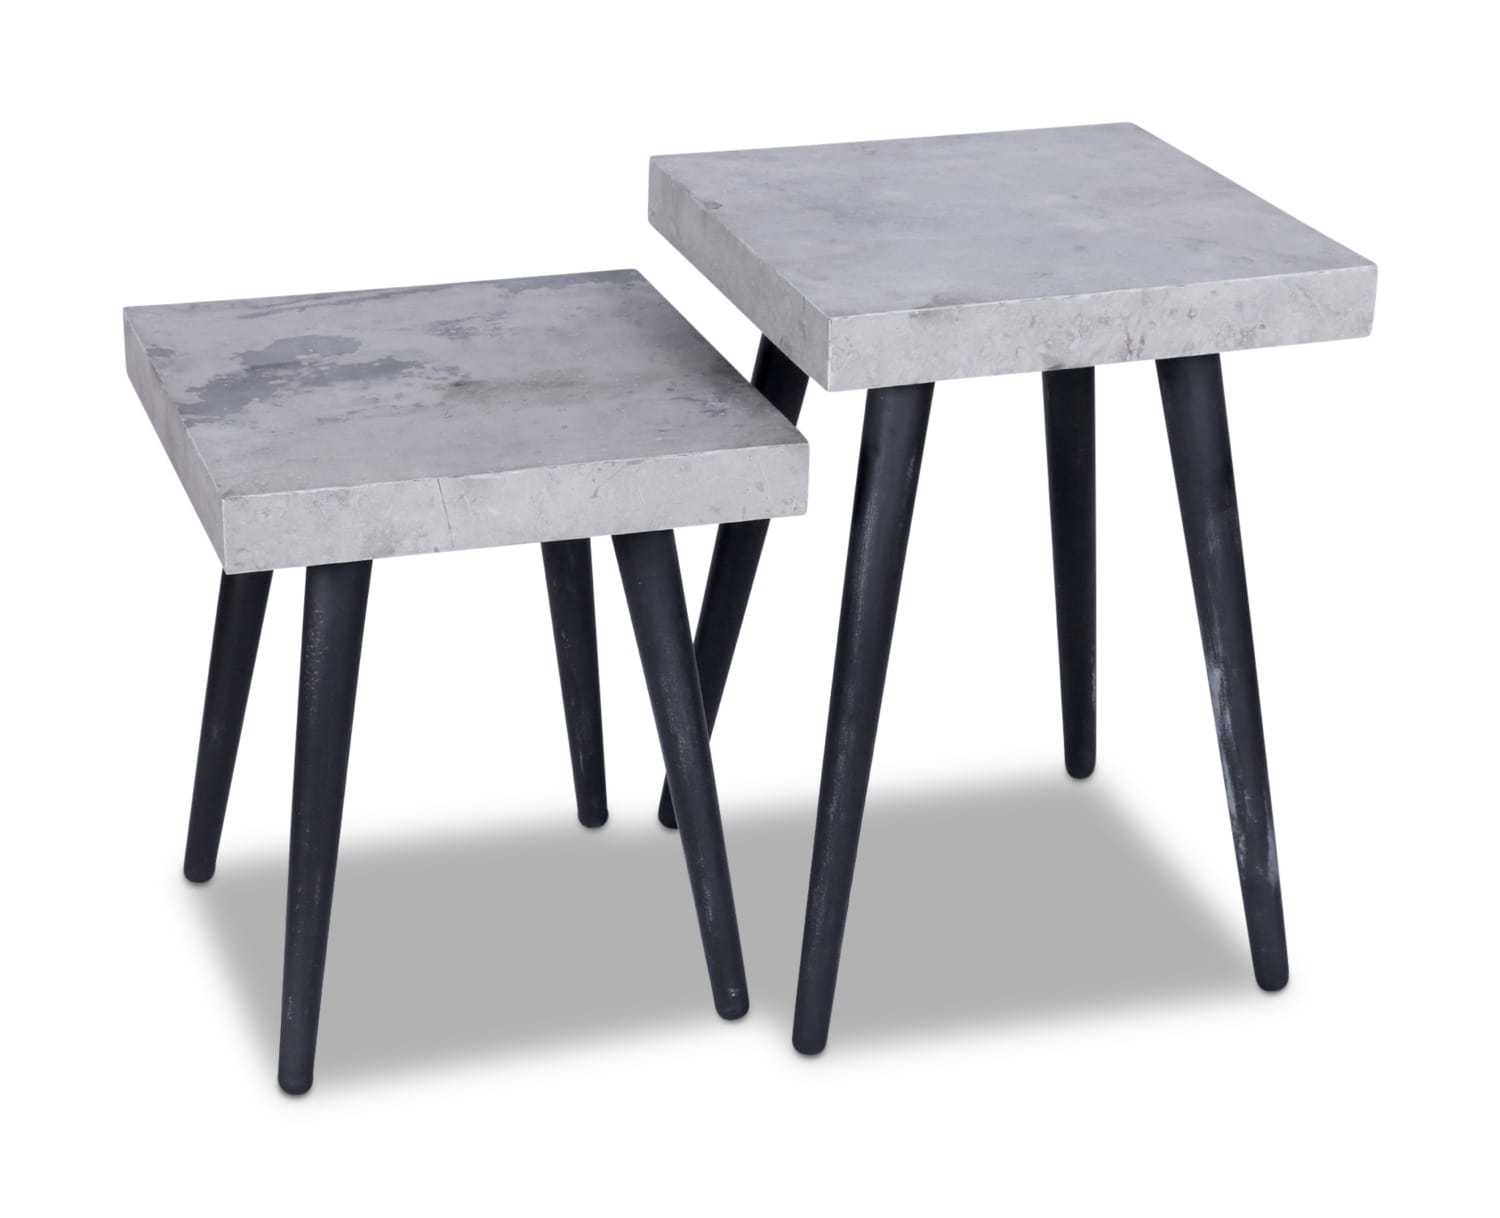 Renton Accent Tables – Set of 2